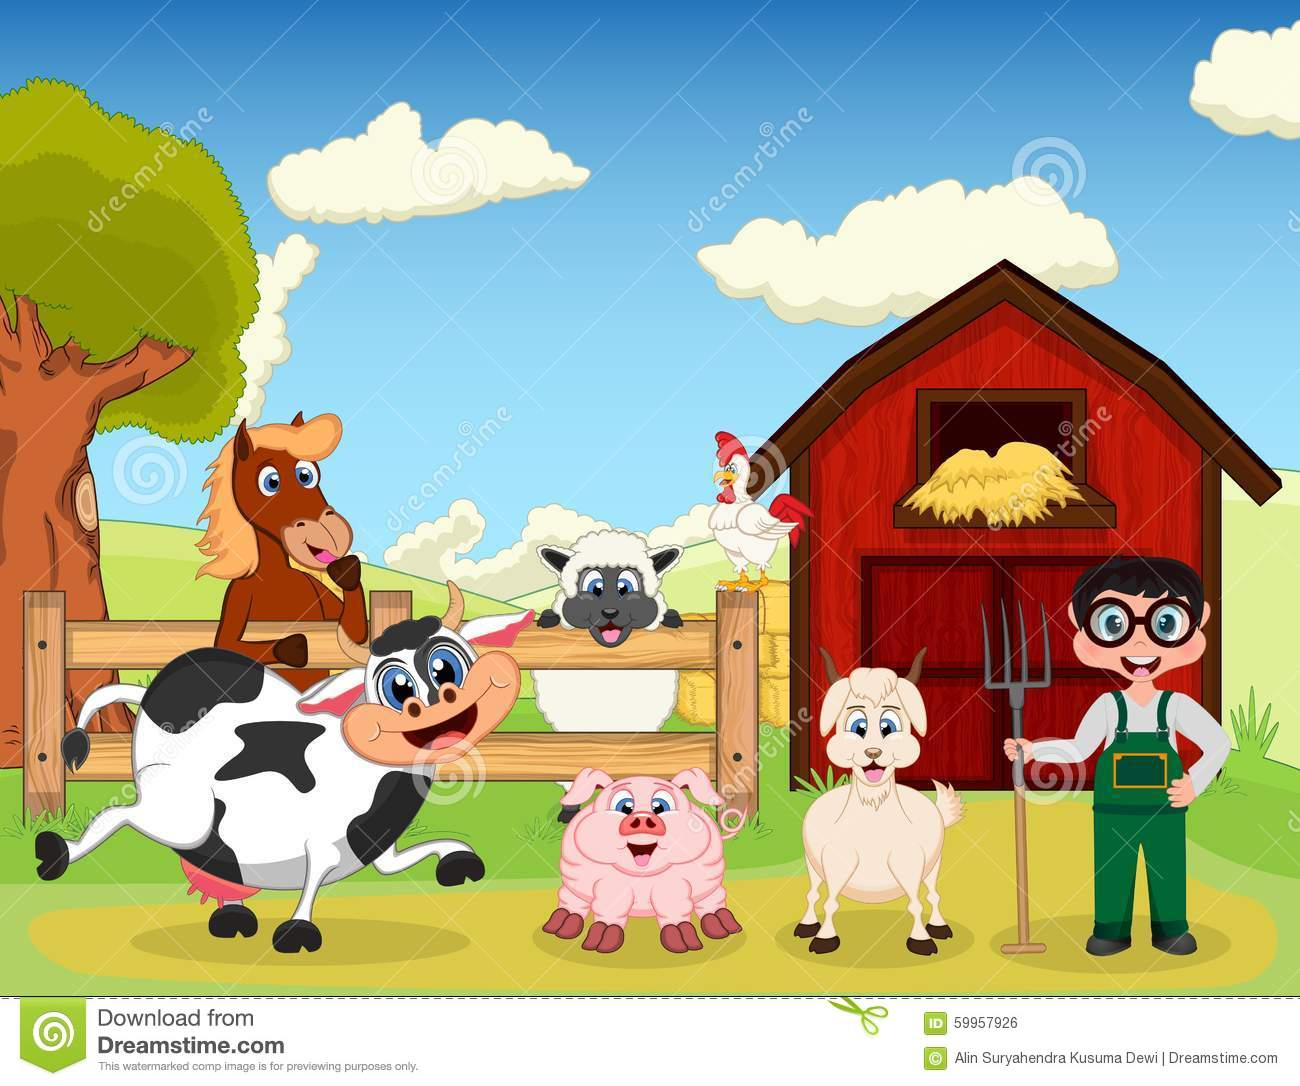 Rabbit Run 71 Inch further Royalty Free Stock Photos Grimacing Child Image23402028 further Mediamatic Aquaponics Project besides Little House For Pigs And Hogs in addition Goat Farming Business Plan. on pig house design plans